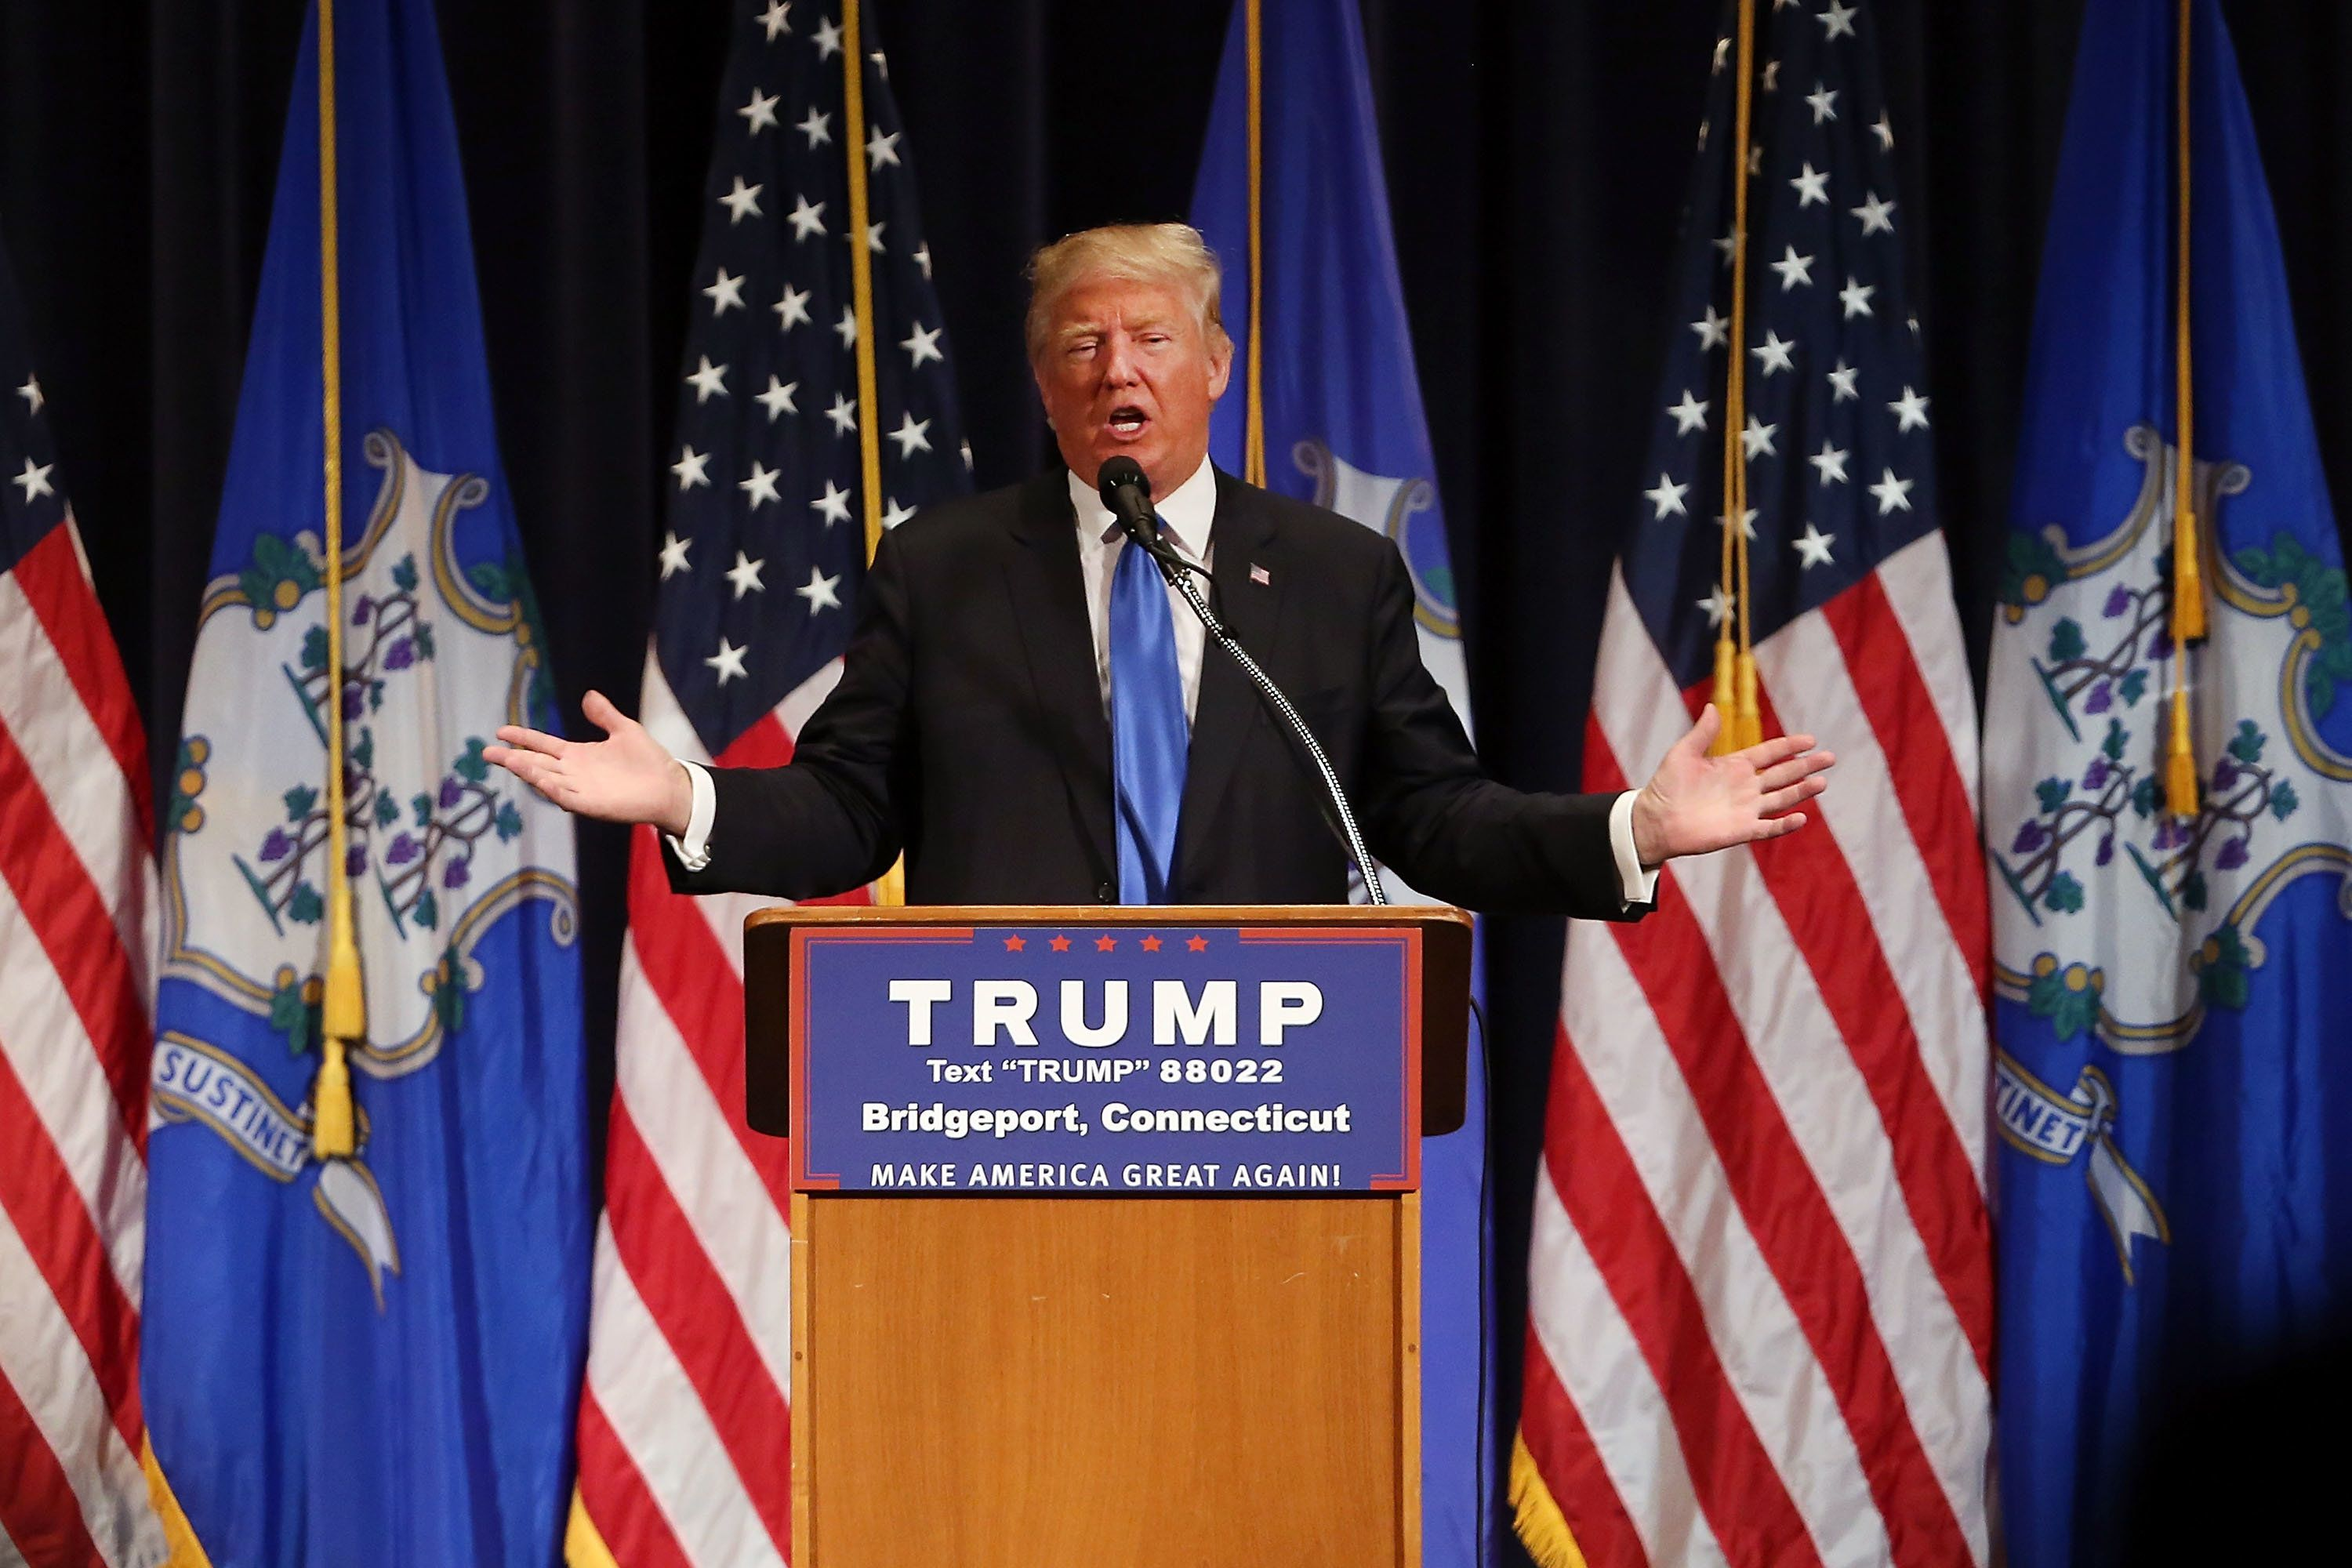 BRIDGEPORT, CT - APRIL 23:  Republican presidential candidate Donald Trump speaks at a rally in Bridgeport on April 23, 2016 in Bridgeport, Connecticut. Under a heavy police presence, the afternoon event was disrupted on a number of occasions by protesters. Despite his advisers pledging that Trump will begin using a more presidential tone in his appearances, in Bridgeport Trump did not use a teleprompter and stuck to his usual style.  (Photo by Spencer Platt/Getty Images)